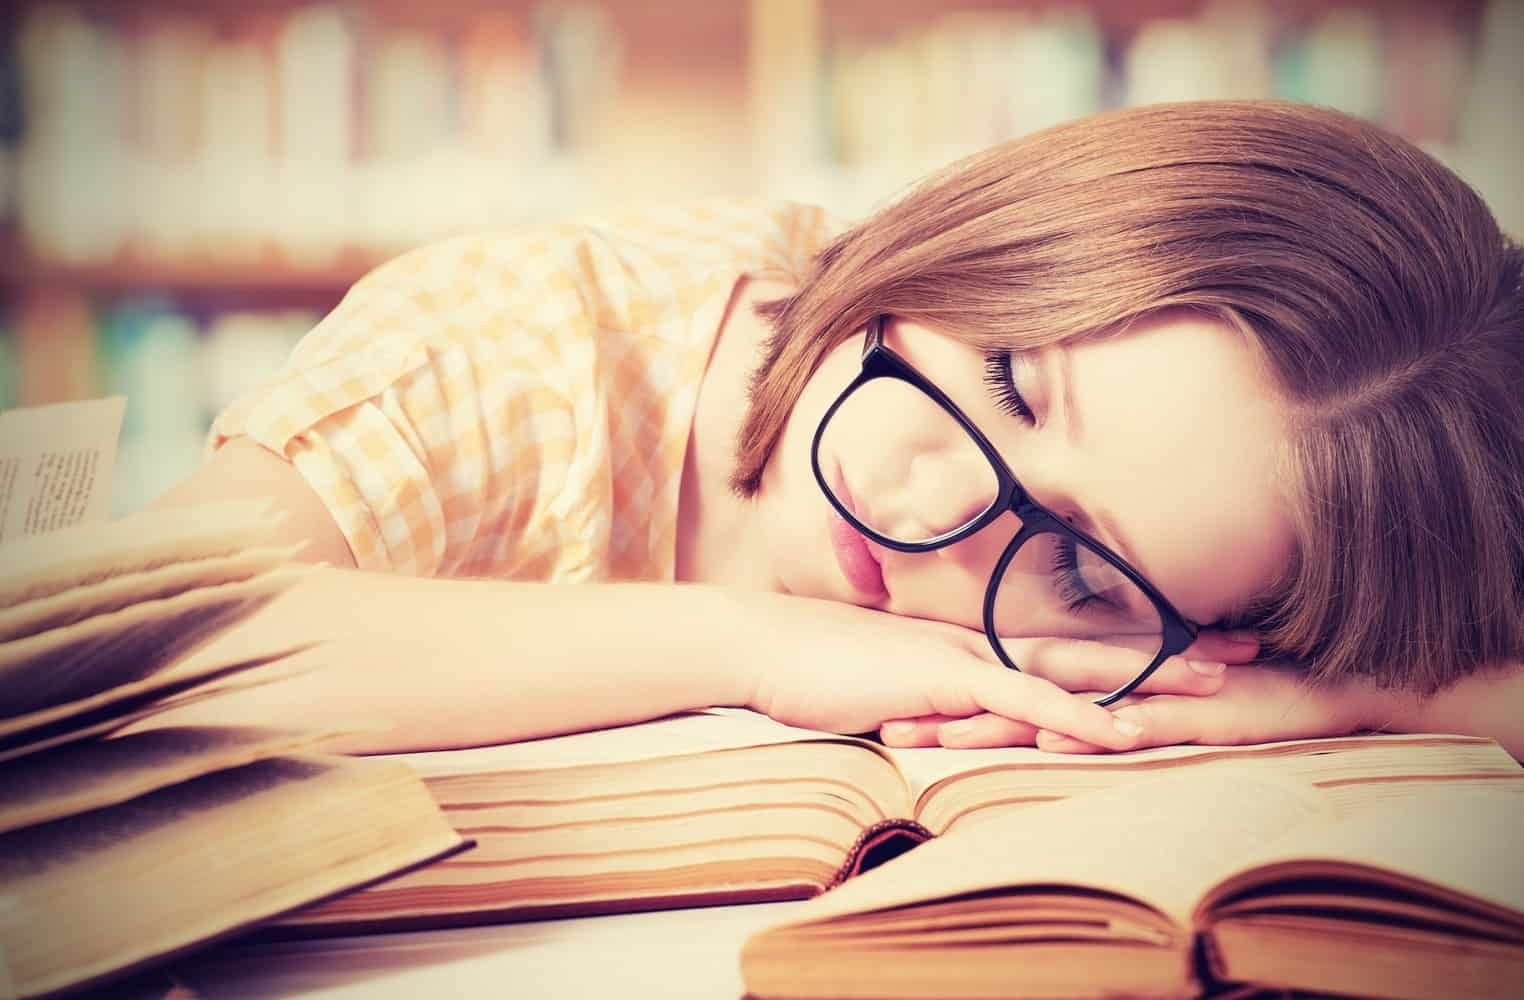 A woman sleeping in a library.